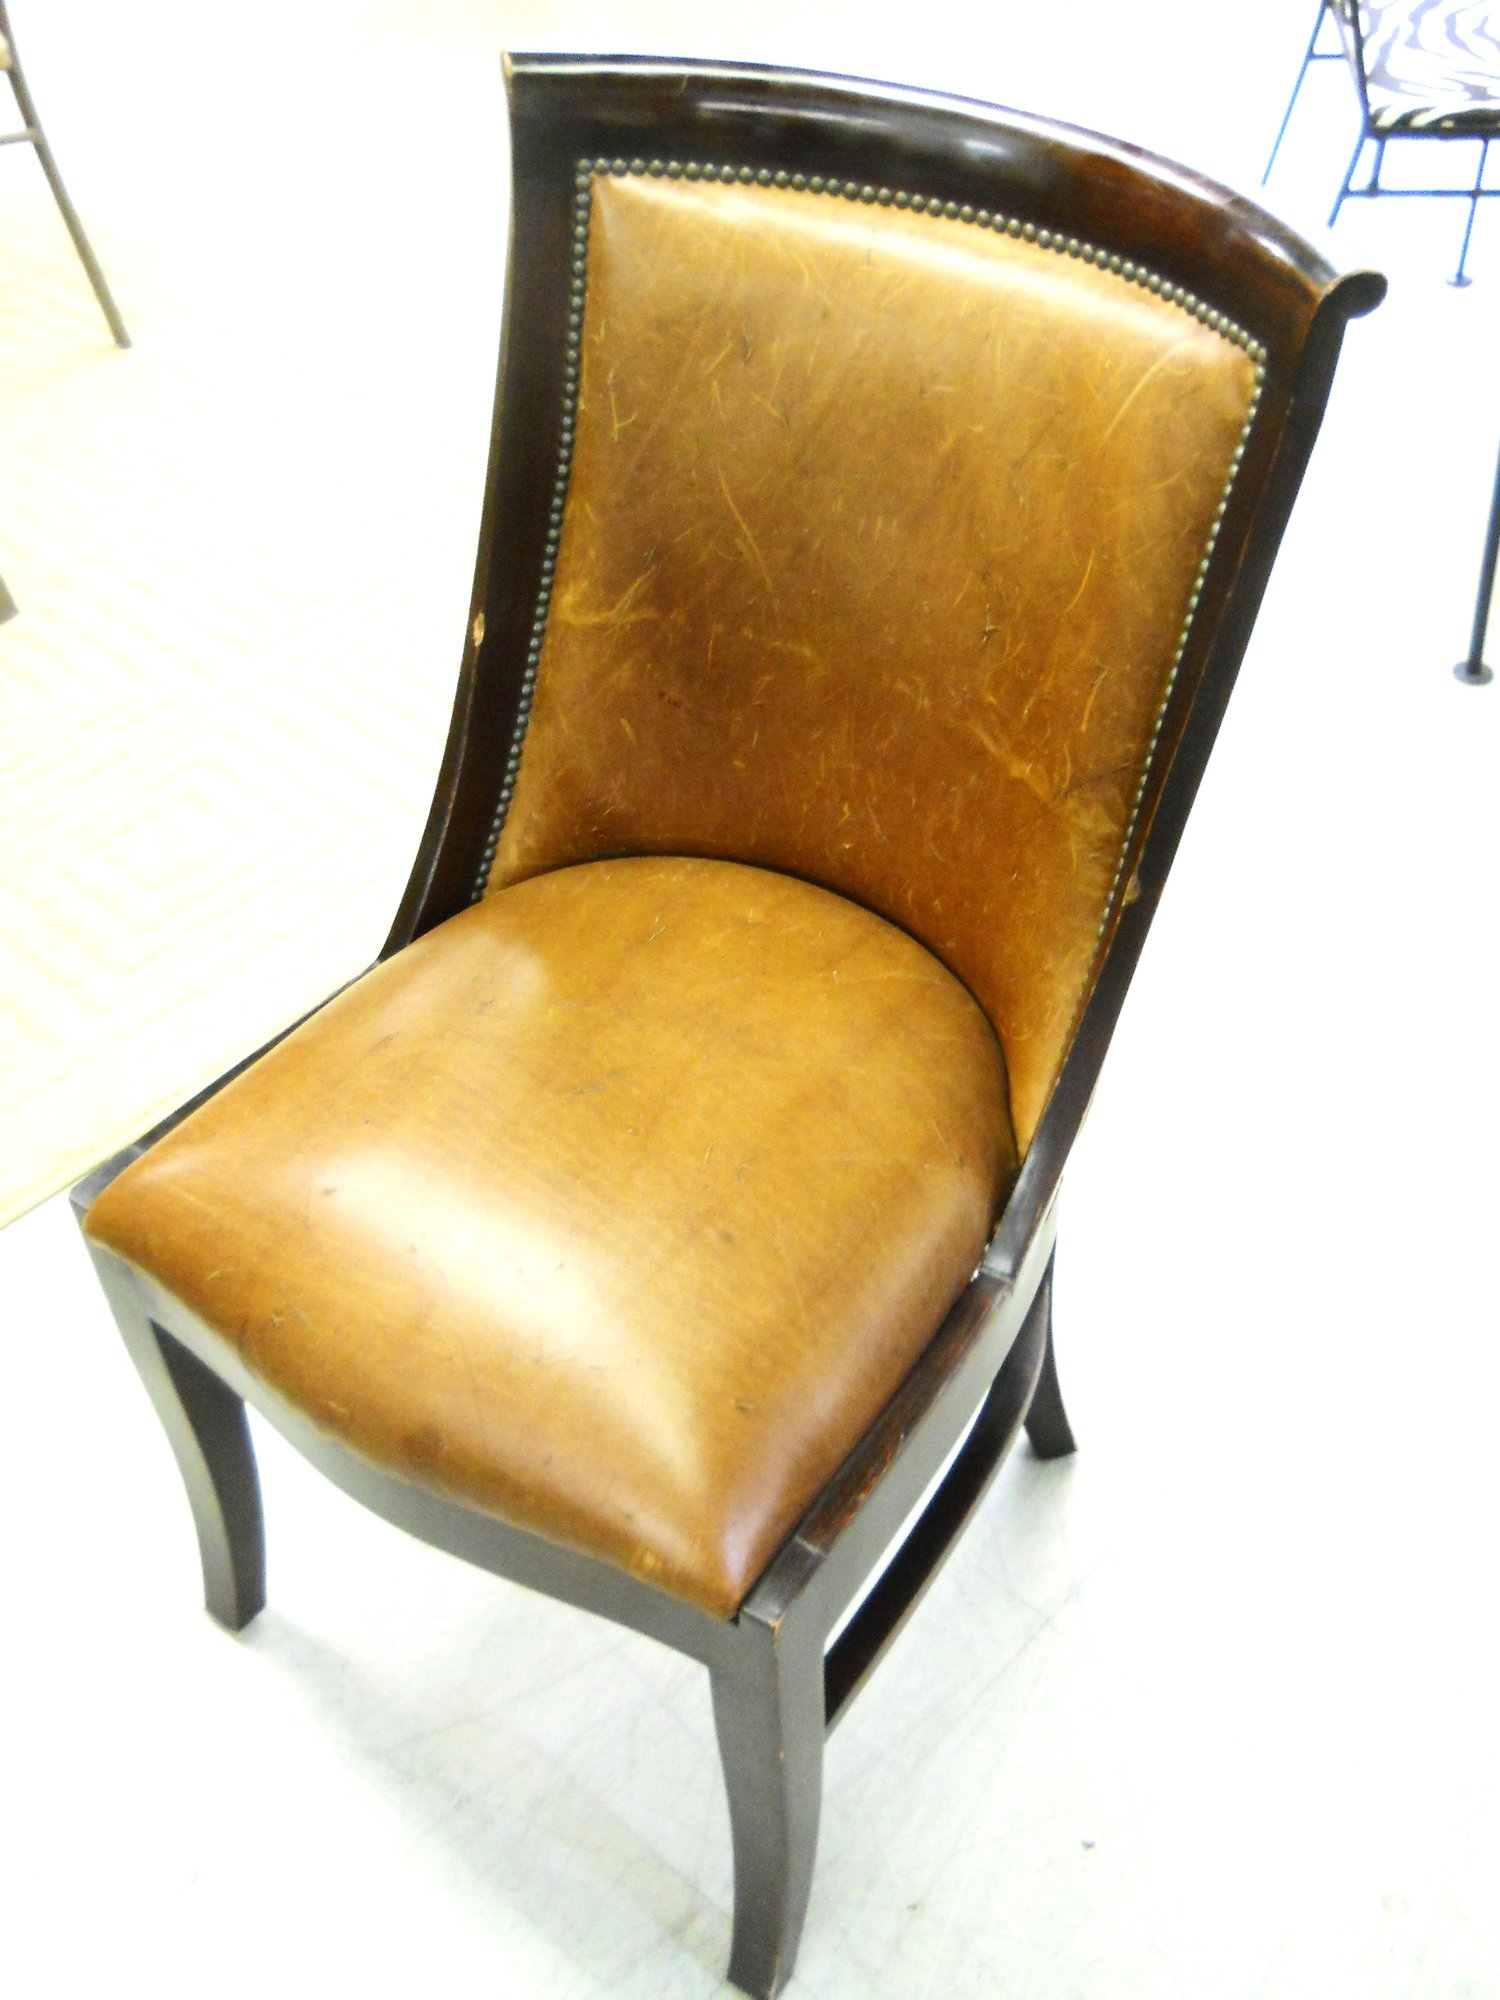 distressed leather desk chair covers for sale in kzn